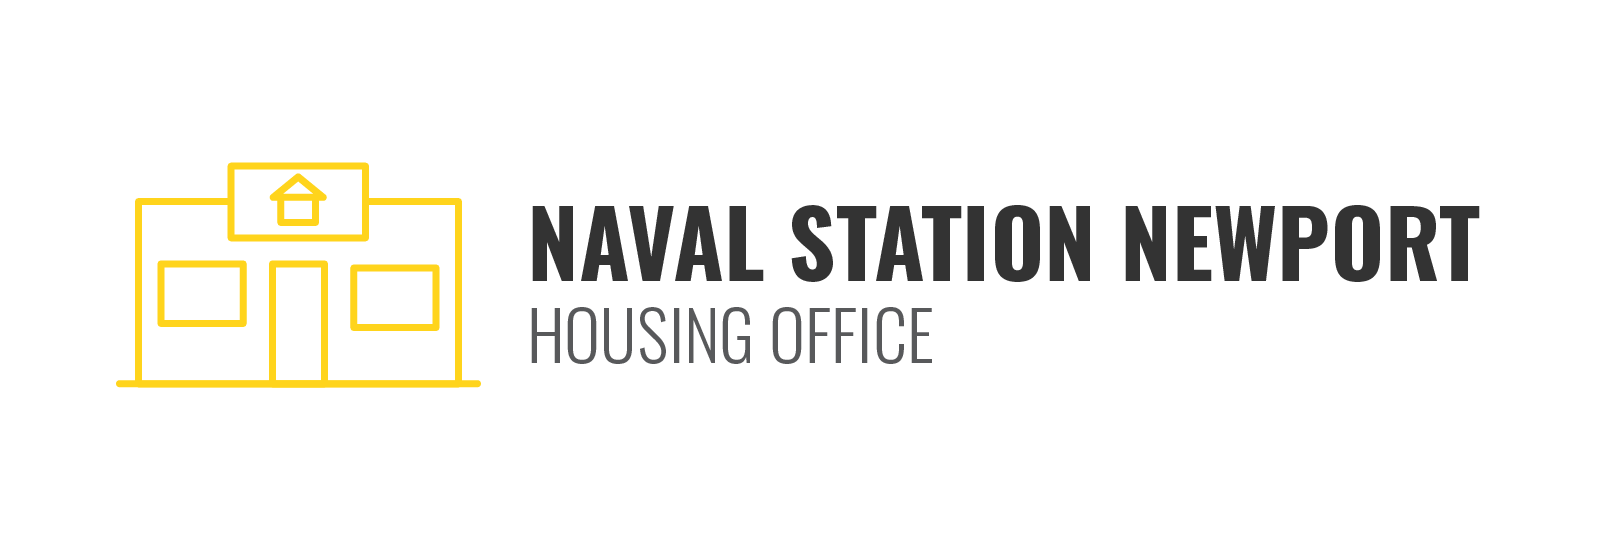 Naval Station Newport Housing Office